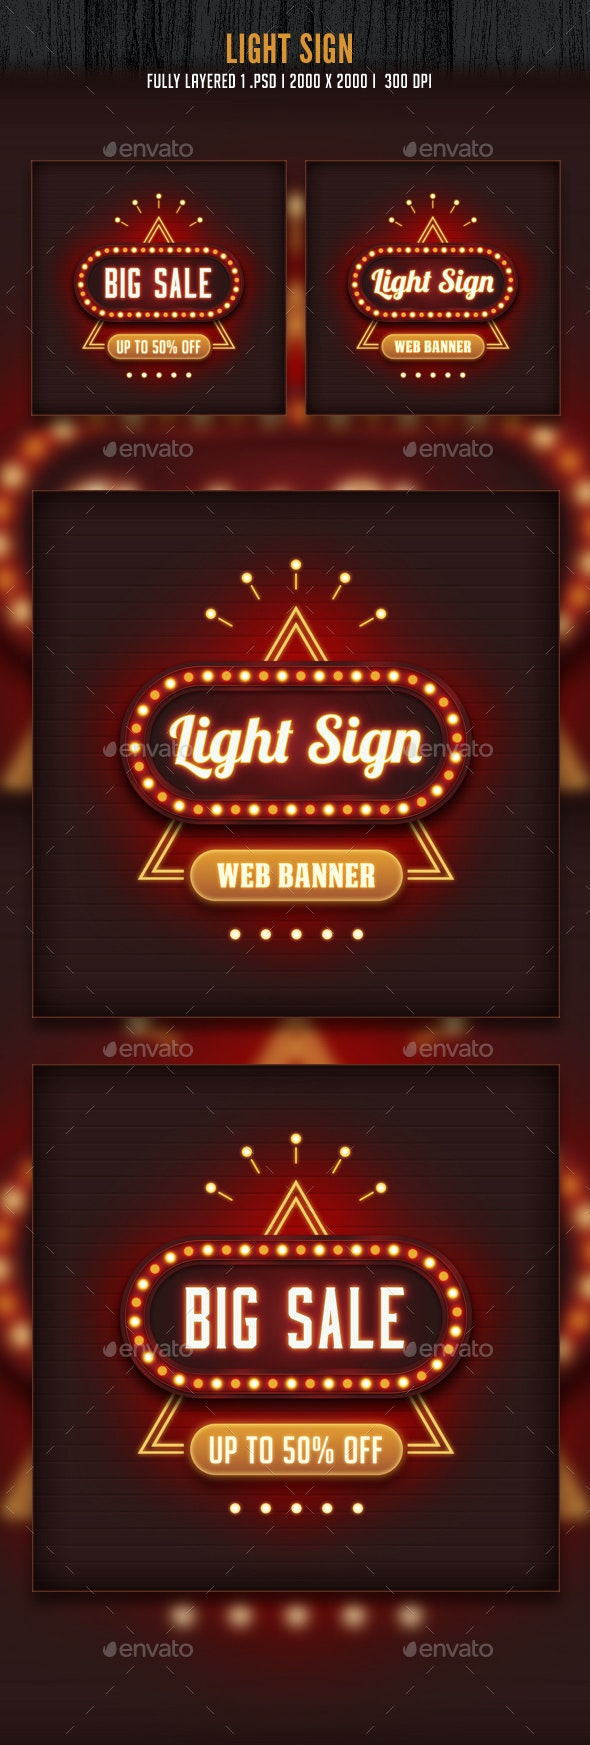 Light Sign Banner - Banners & Ads Web Elements